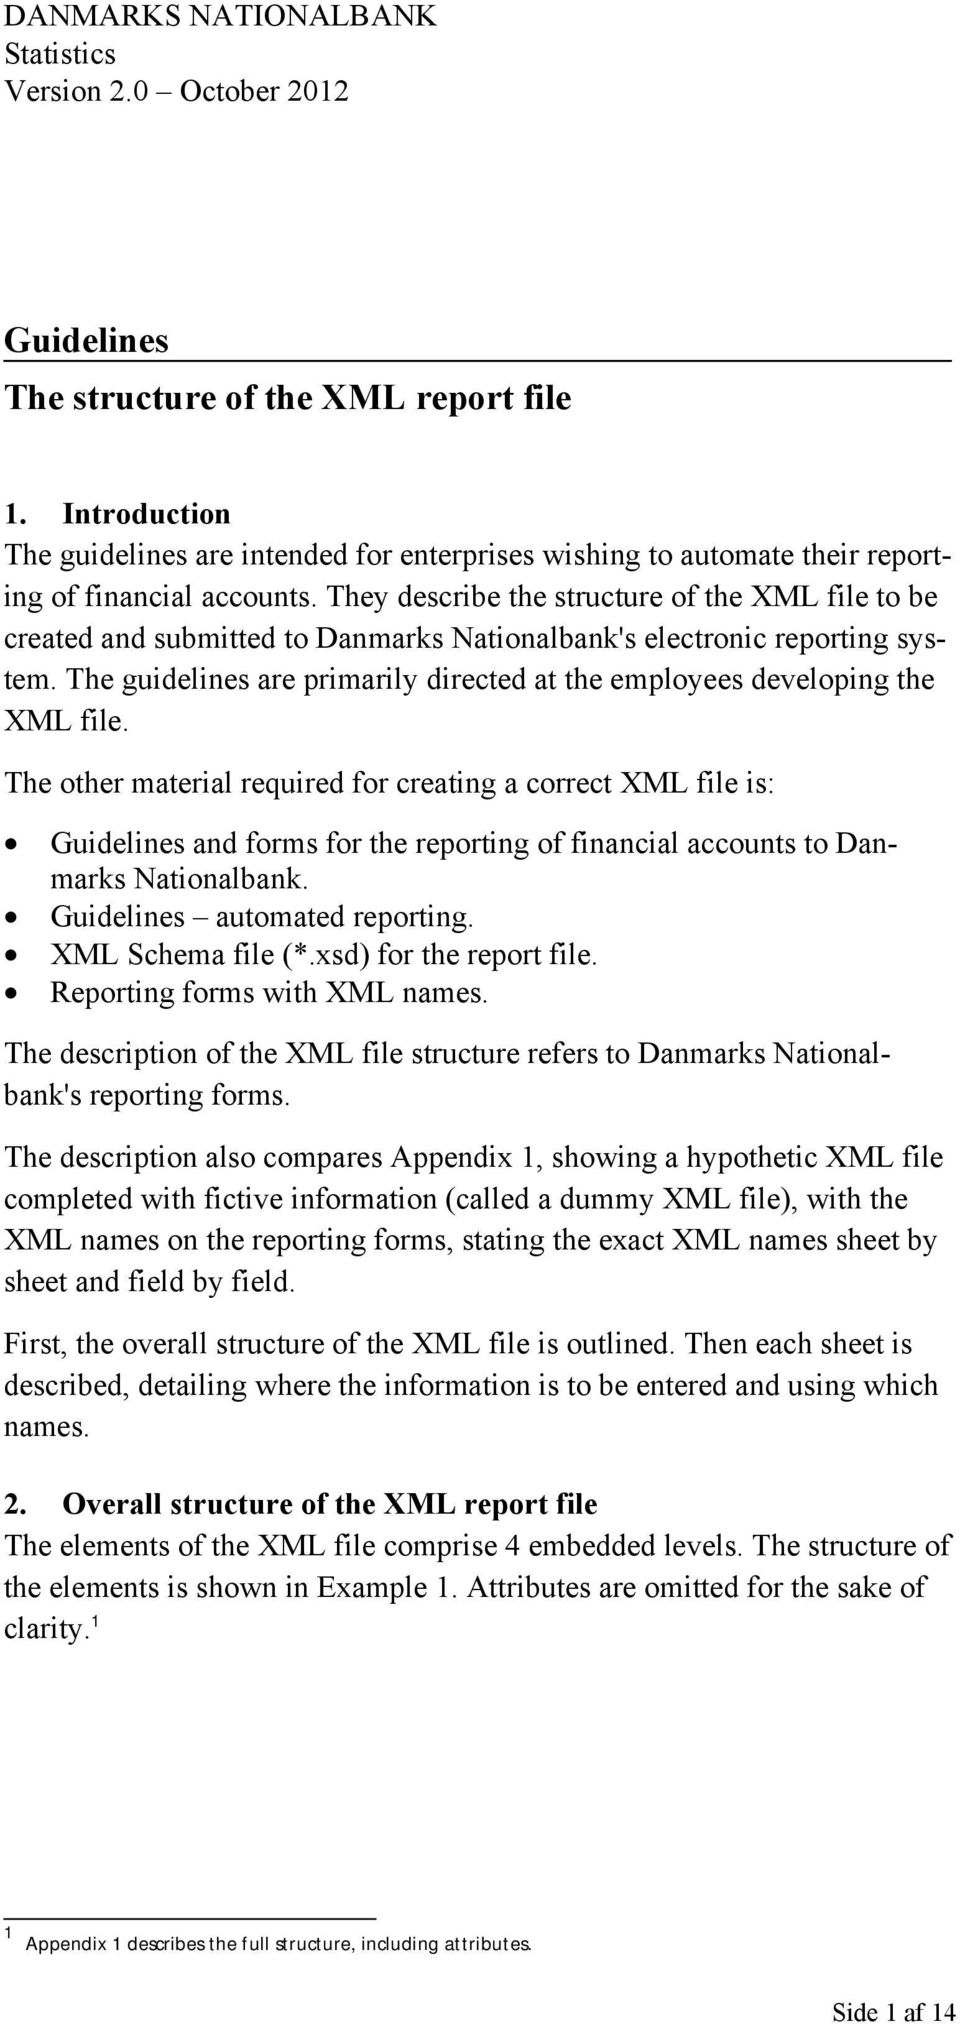 They describe the structure of the XML file to be created and submitted to Danmarks Nationalbank's electronic reporting system.